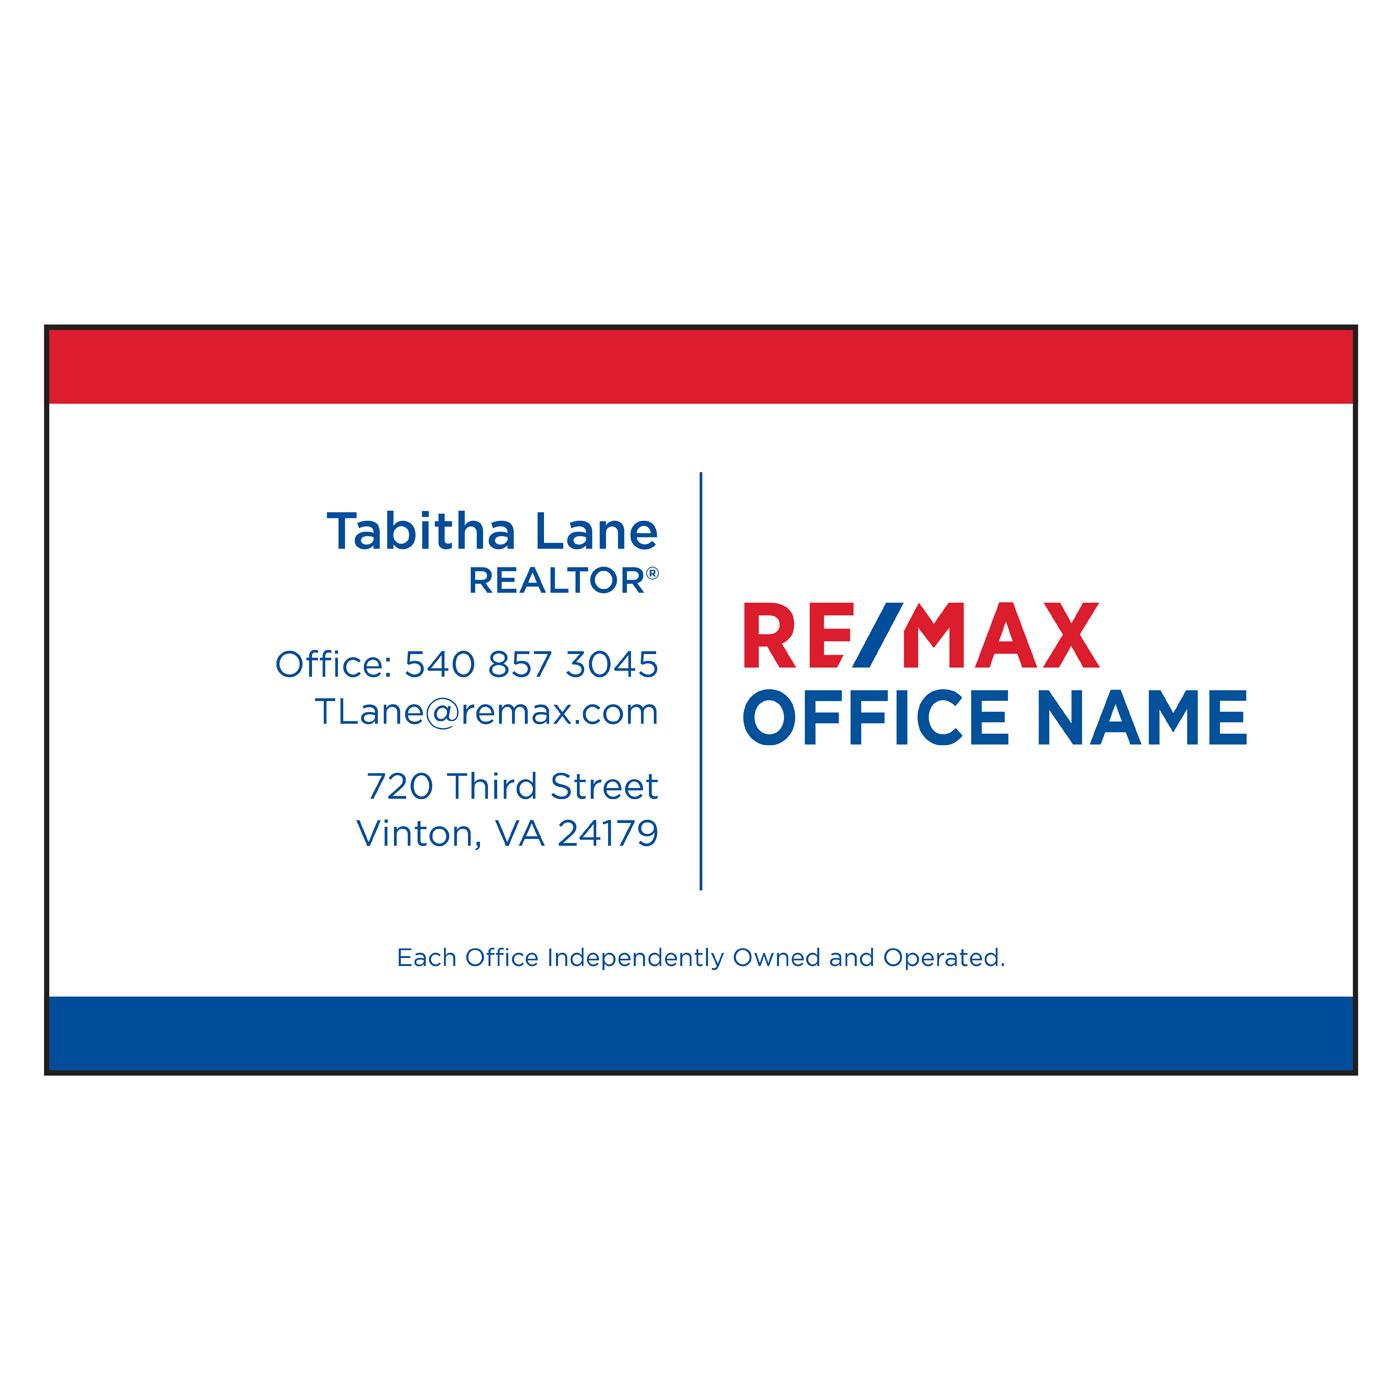 RE/MAX Classic Text Business Card